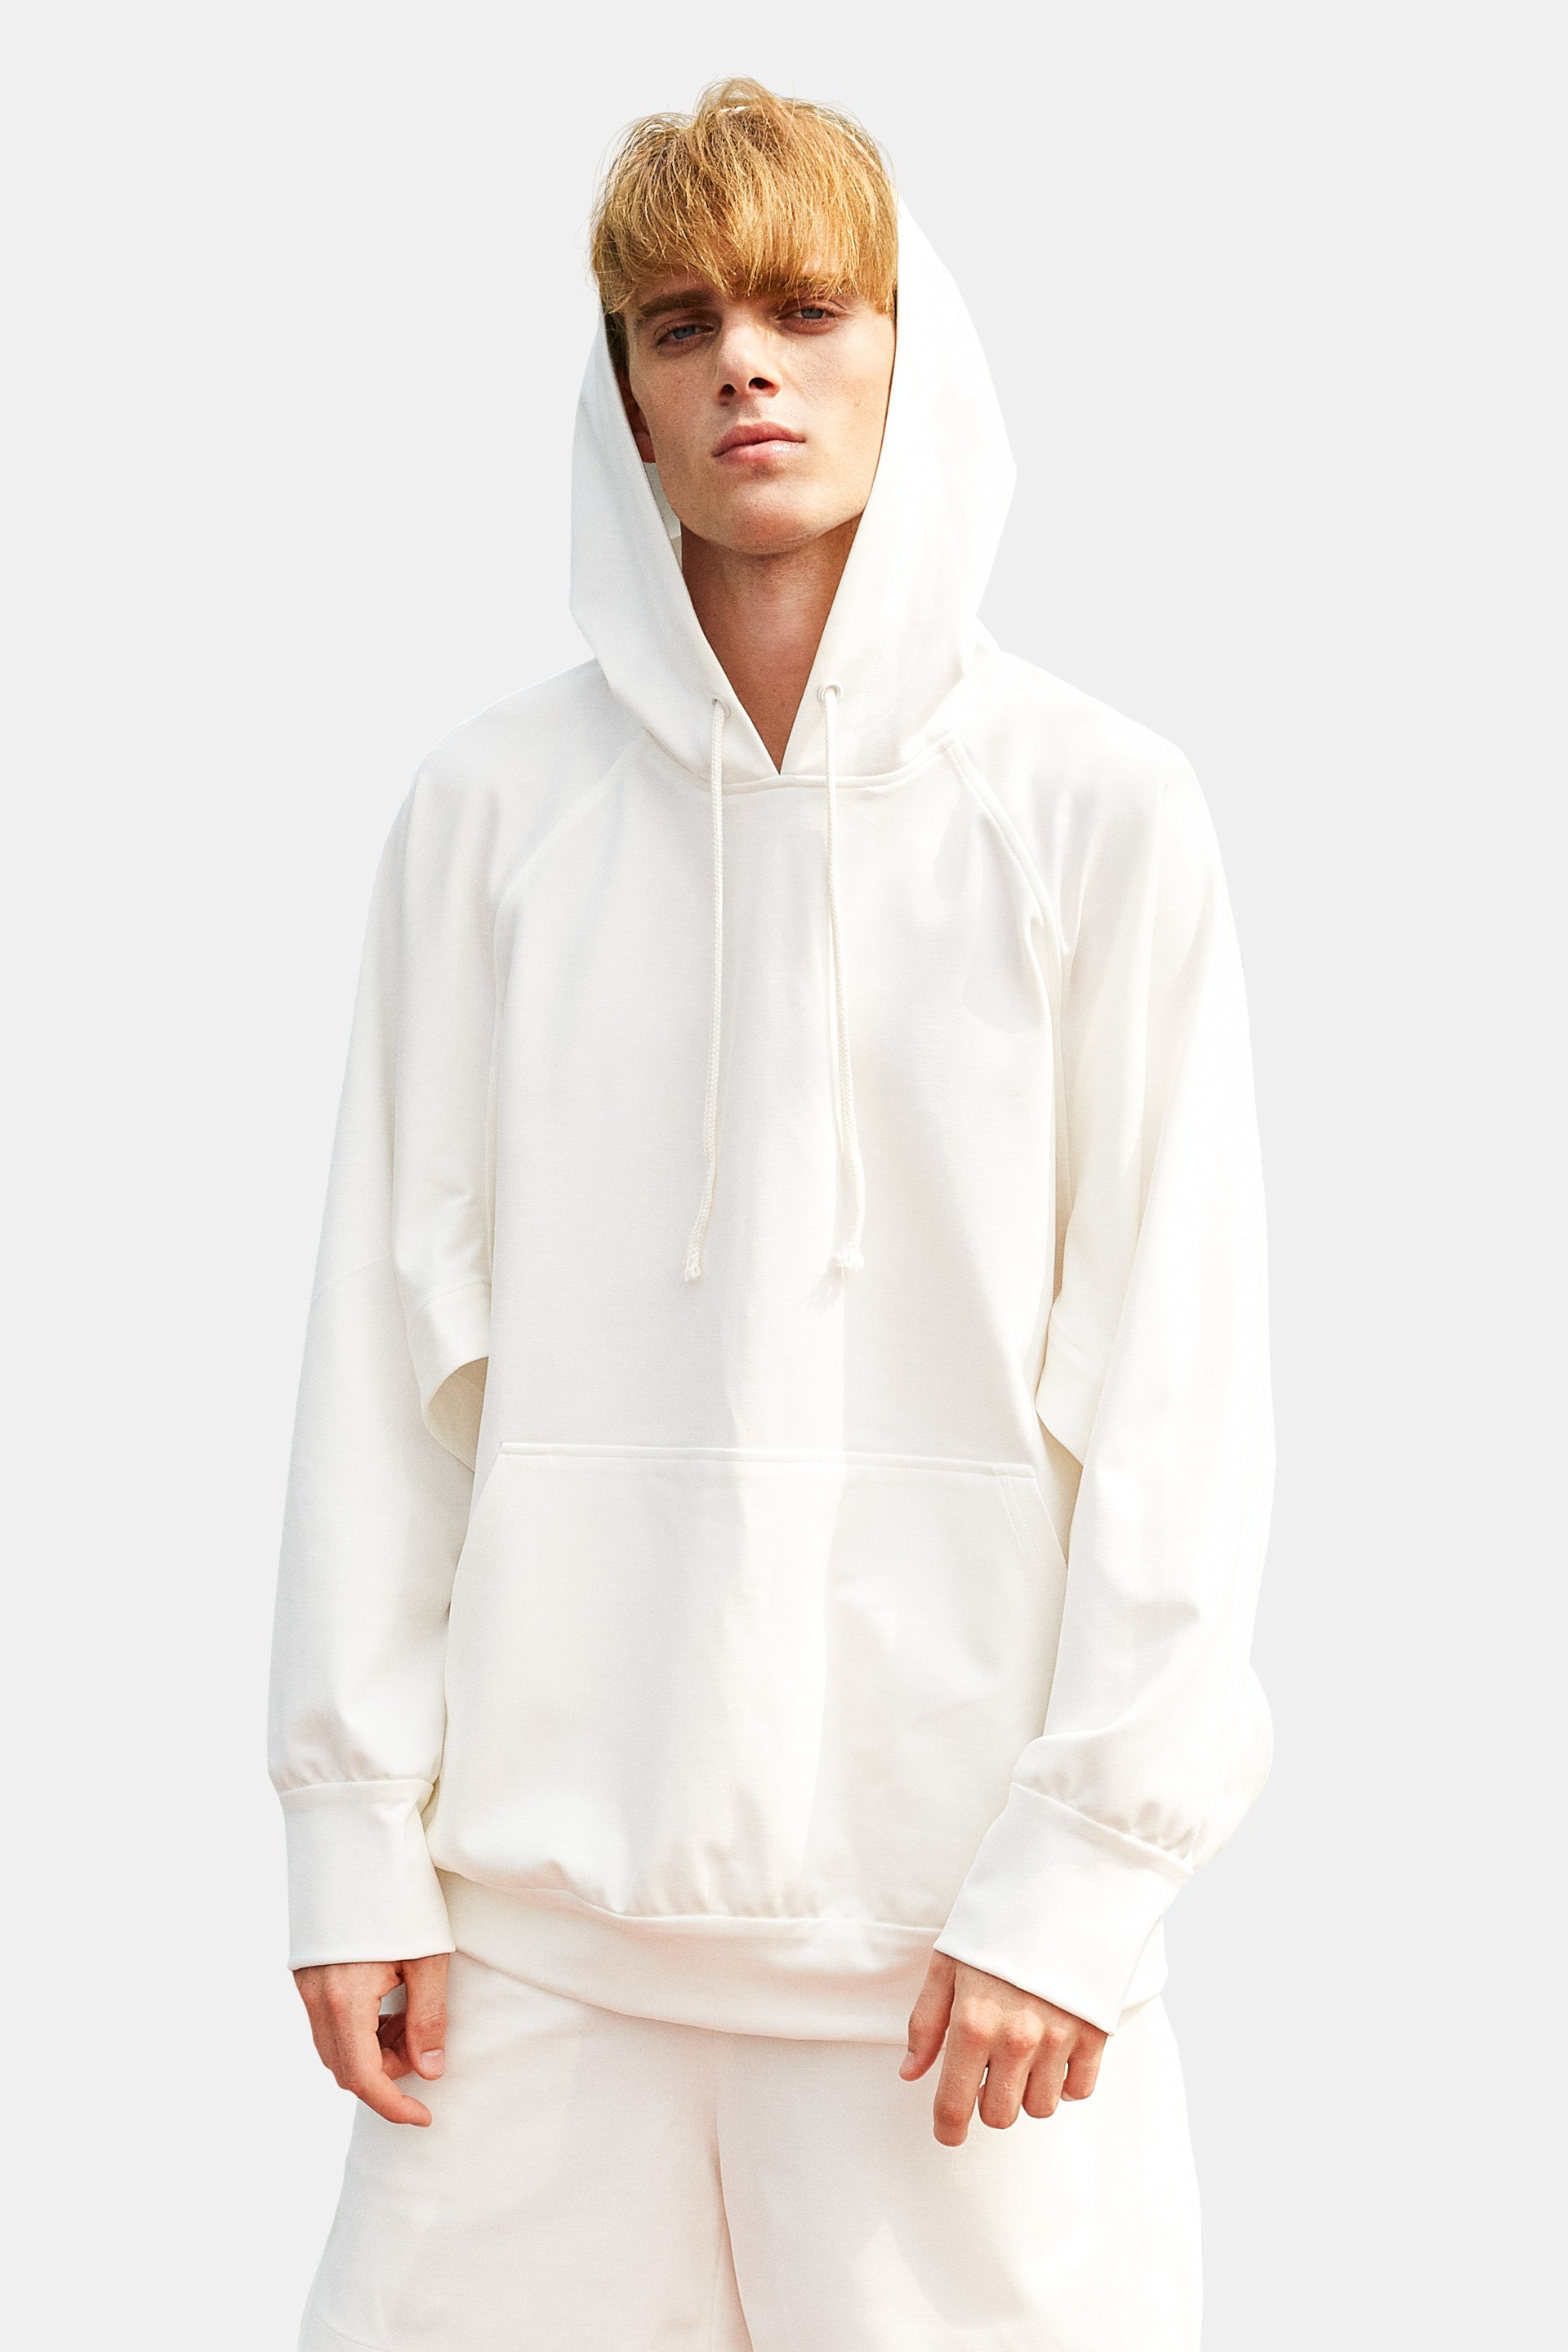 SEANNUNG - 白色長袖開衩帽T Long Sleeve Split Hoodie in White - Men